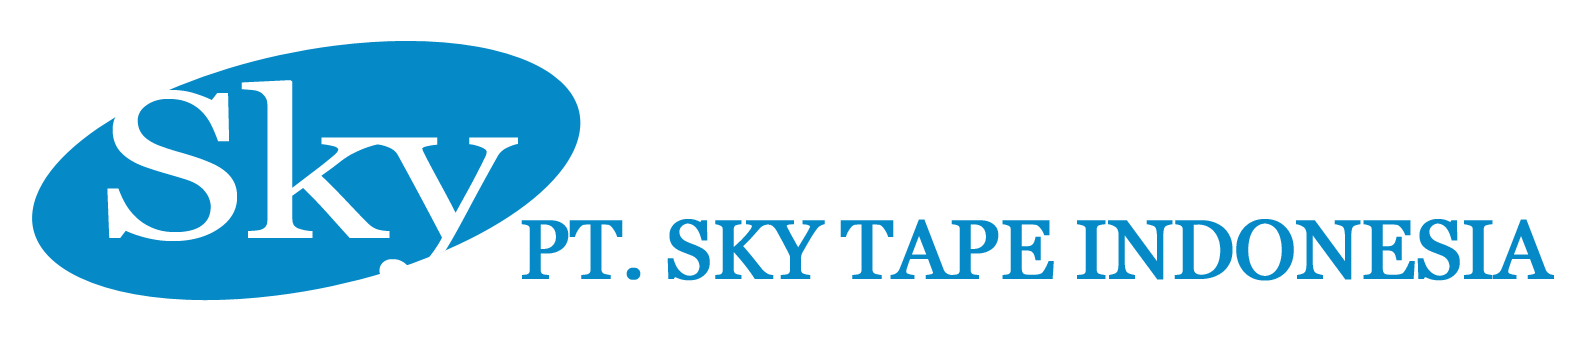 PT SKY TAPE INDONESIA